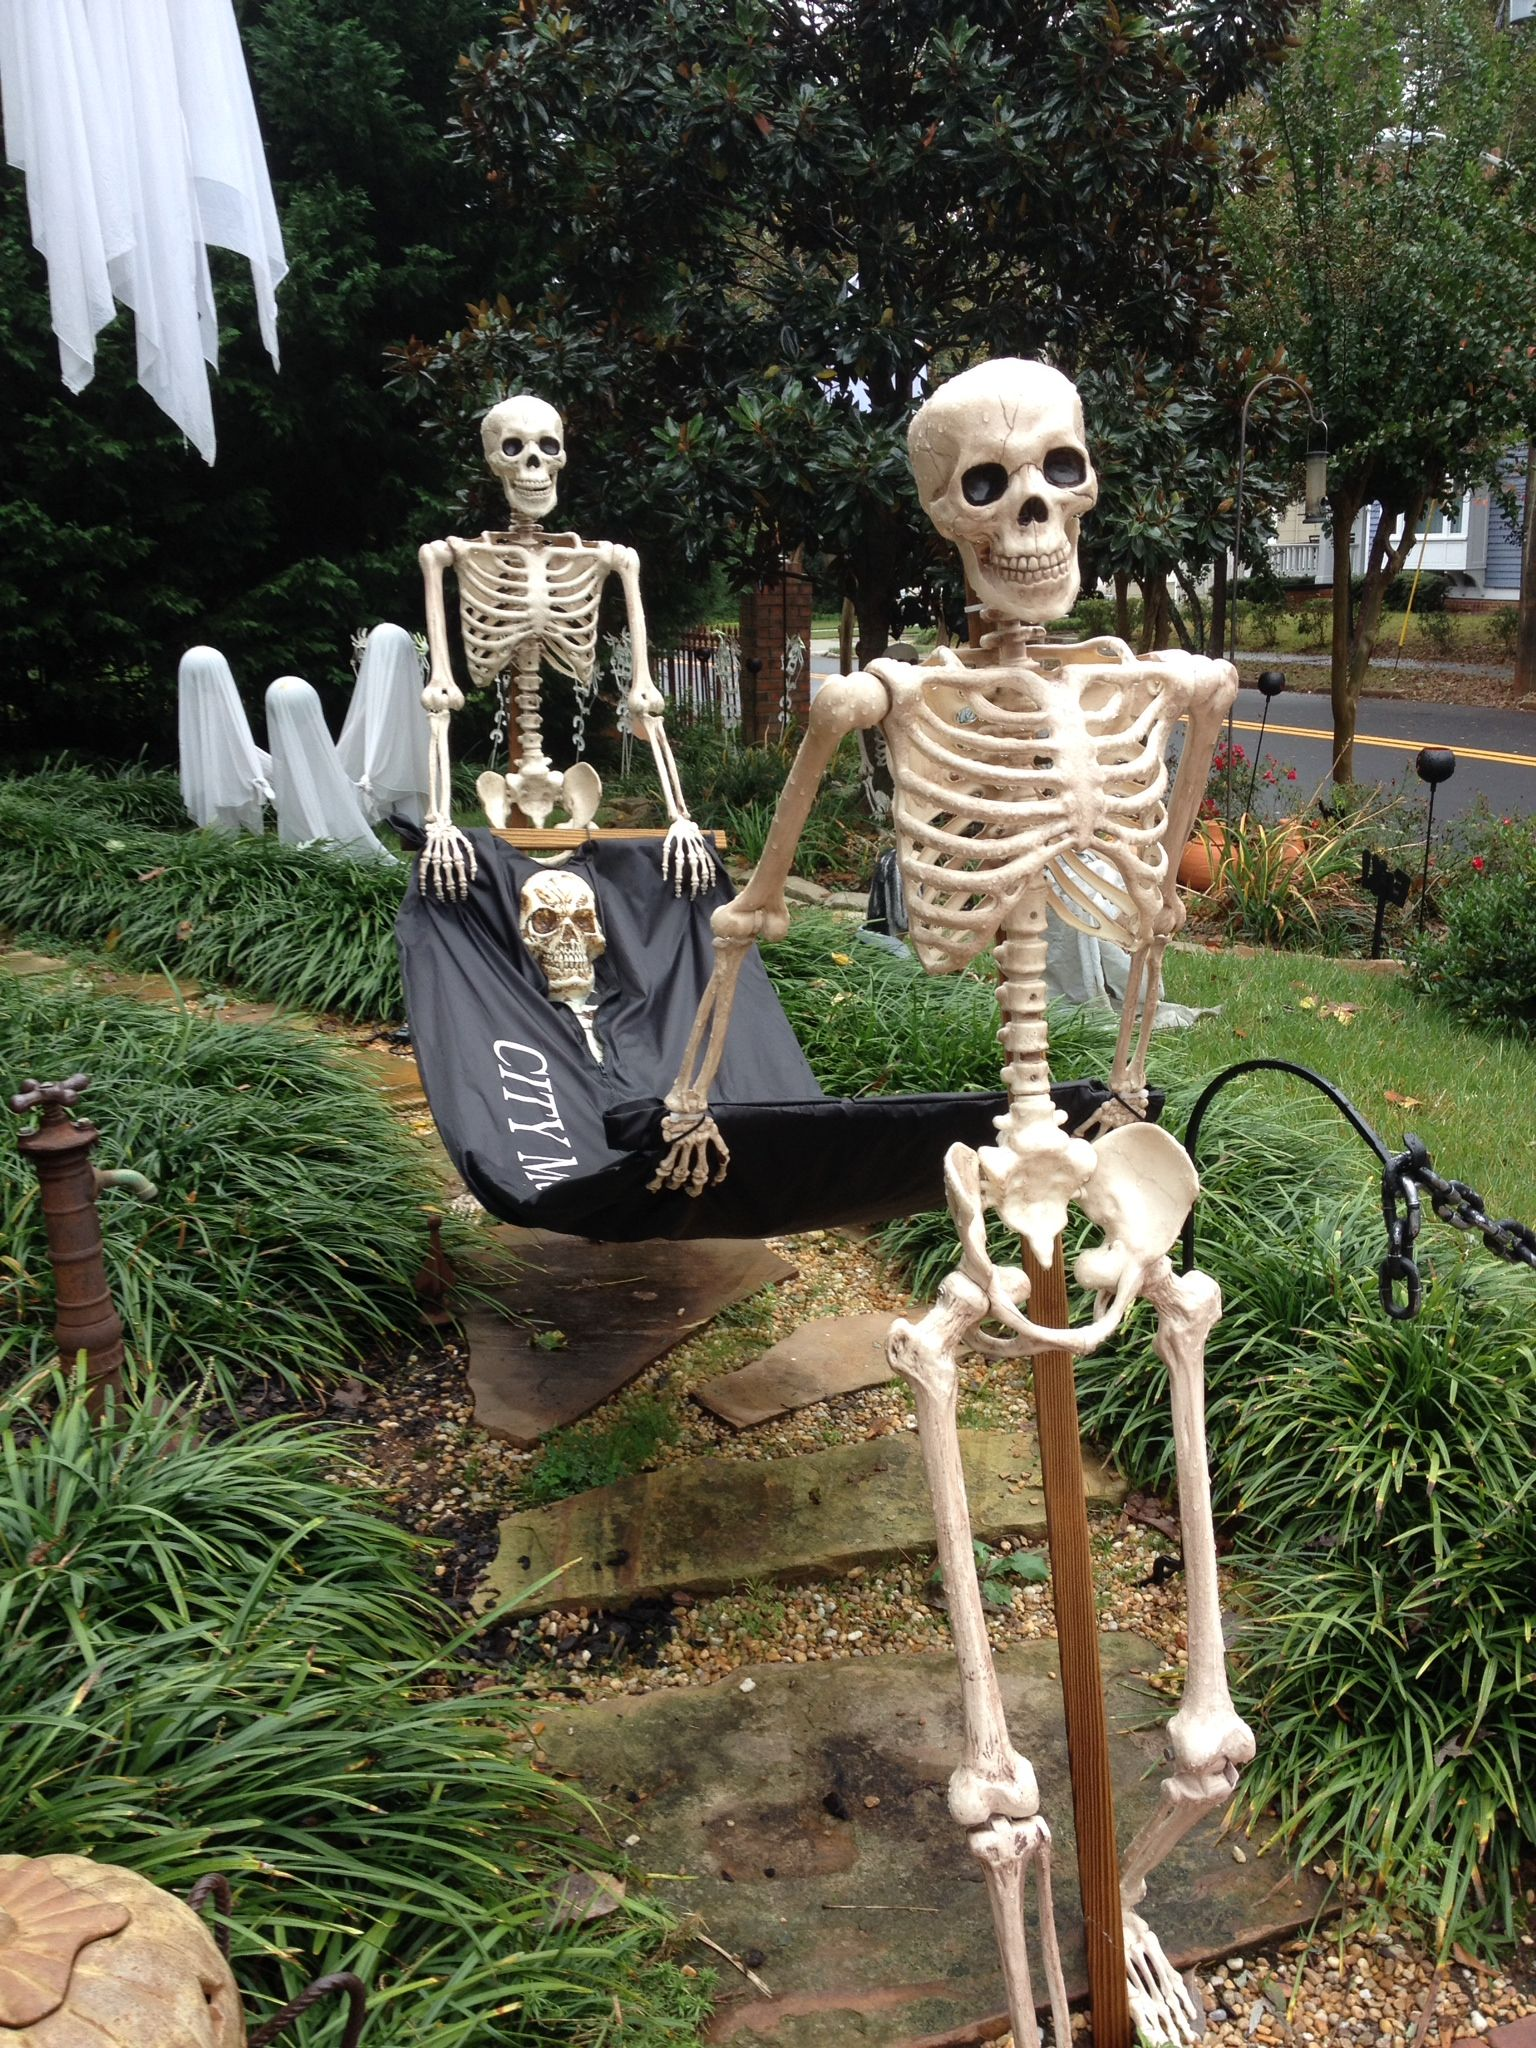 Pin by Lizz Bumbera Gagnon on Bonesideas Pinterest Halloween - Halloween Yard Decorations Ideas